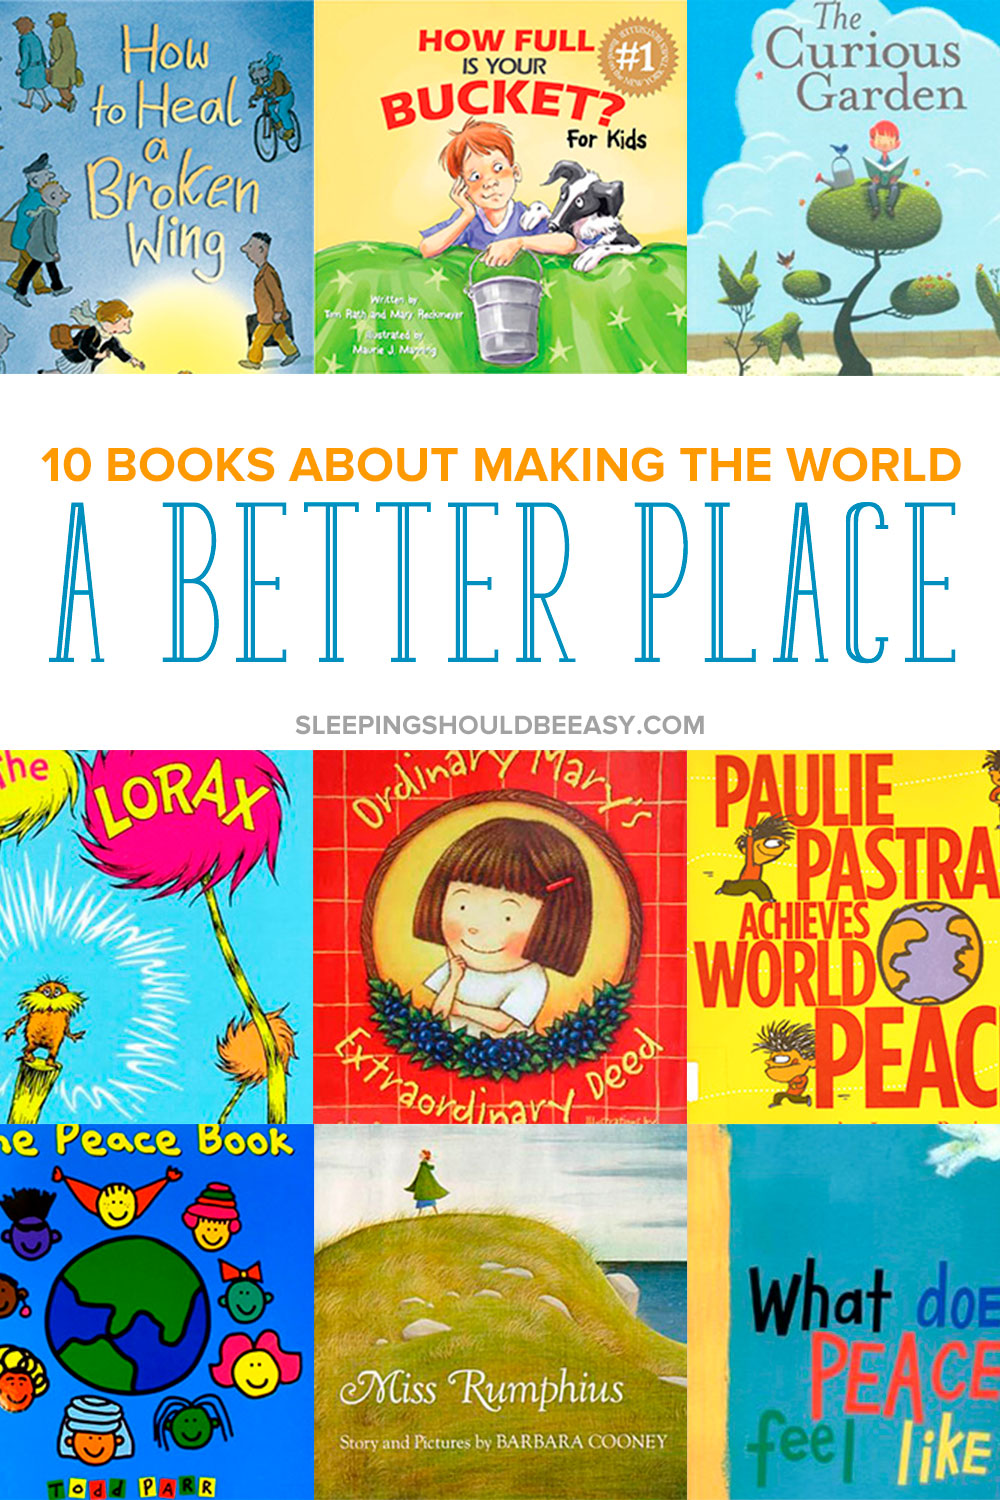 Inspire our future generation with children's books about making the world a better place. Get ideas to teach empathy, kindness to people and taking care of our world. These 10 children's books about changing the world will inspire and show kids how to do just that.